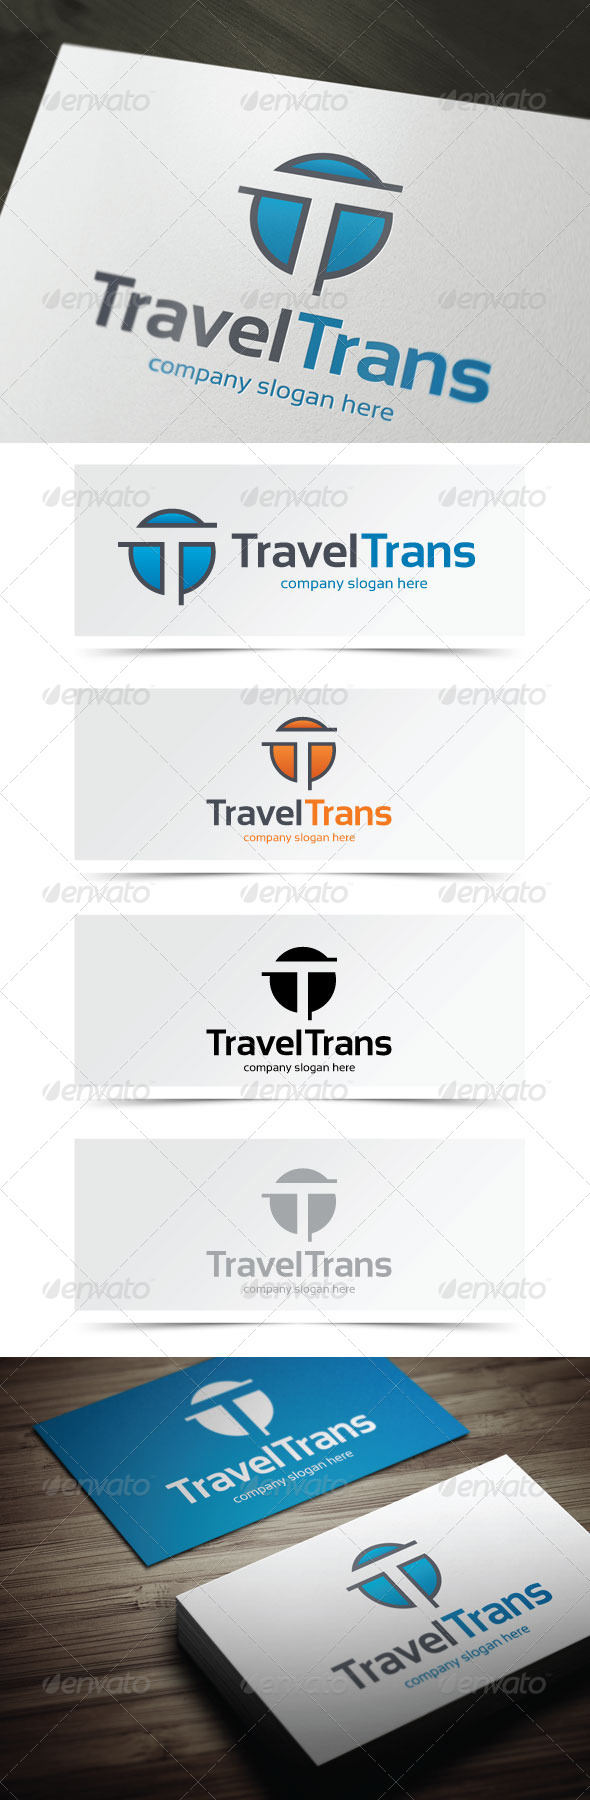 GraphicRiver Travel Trans 5404391